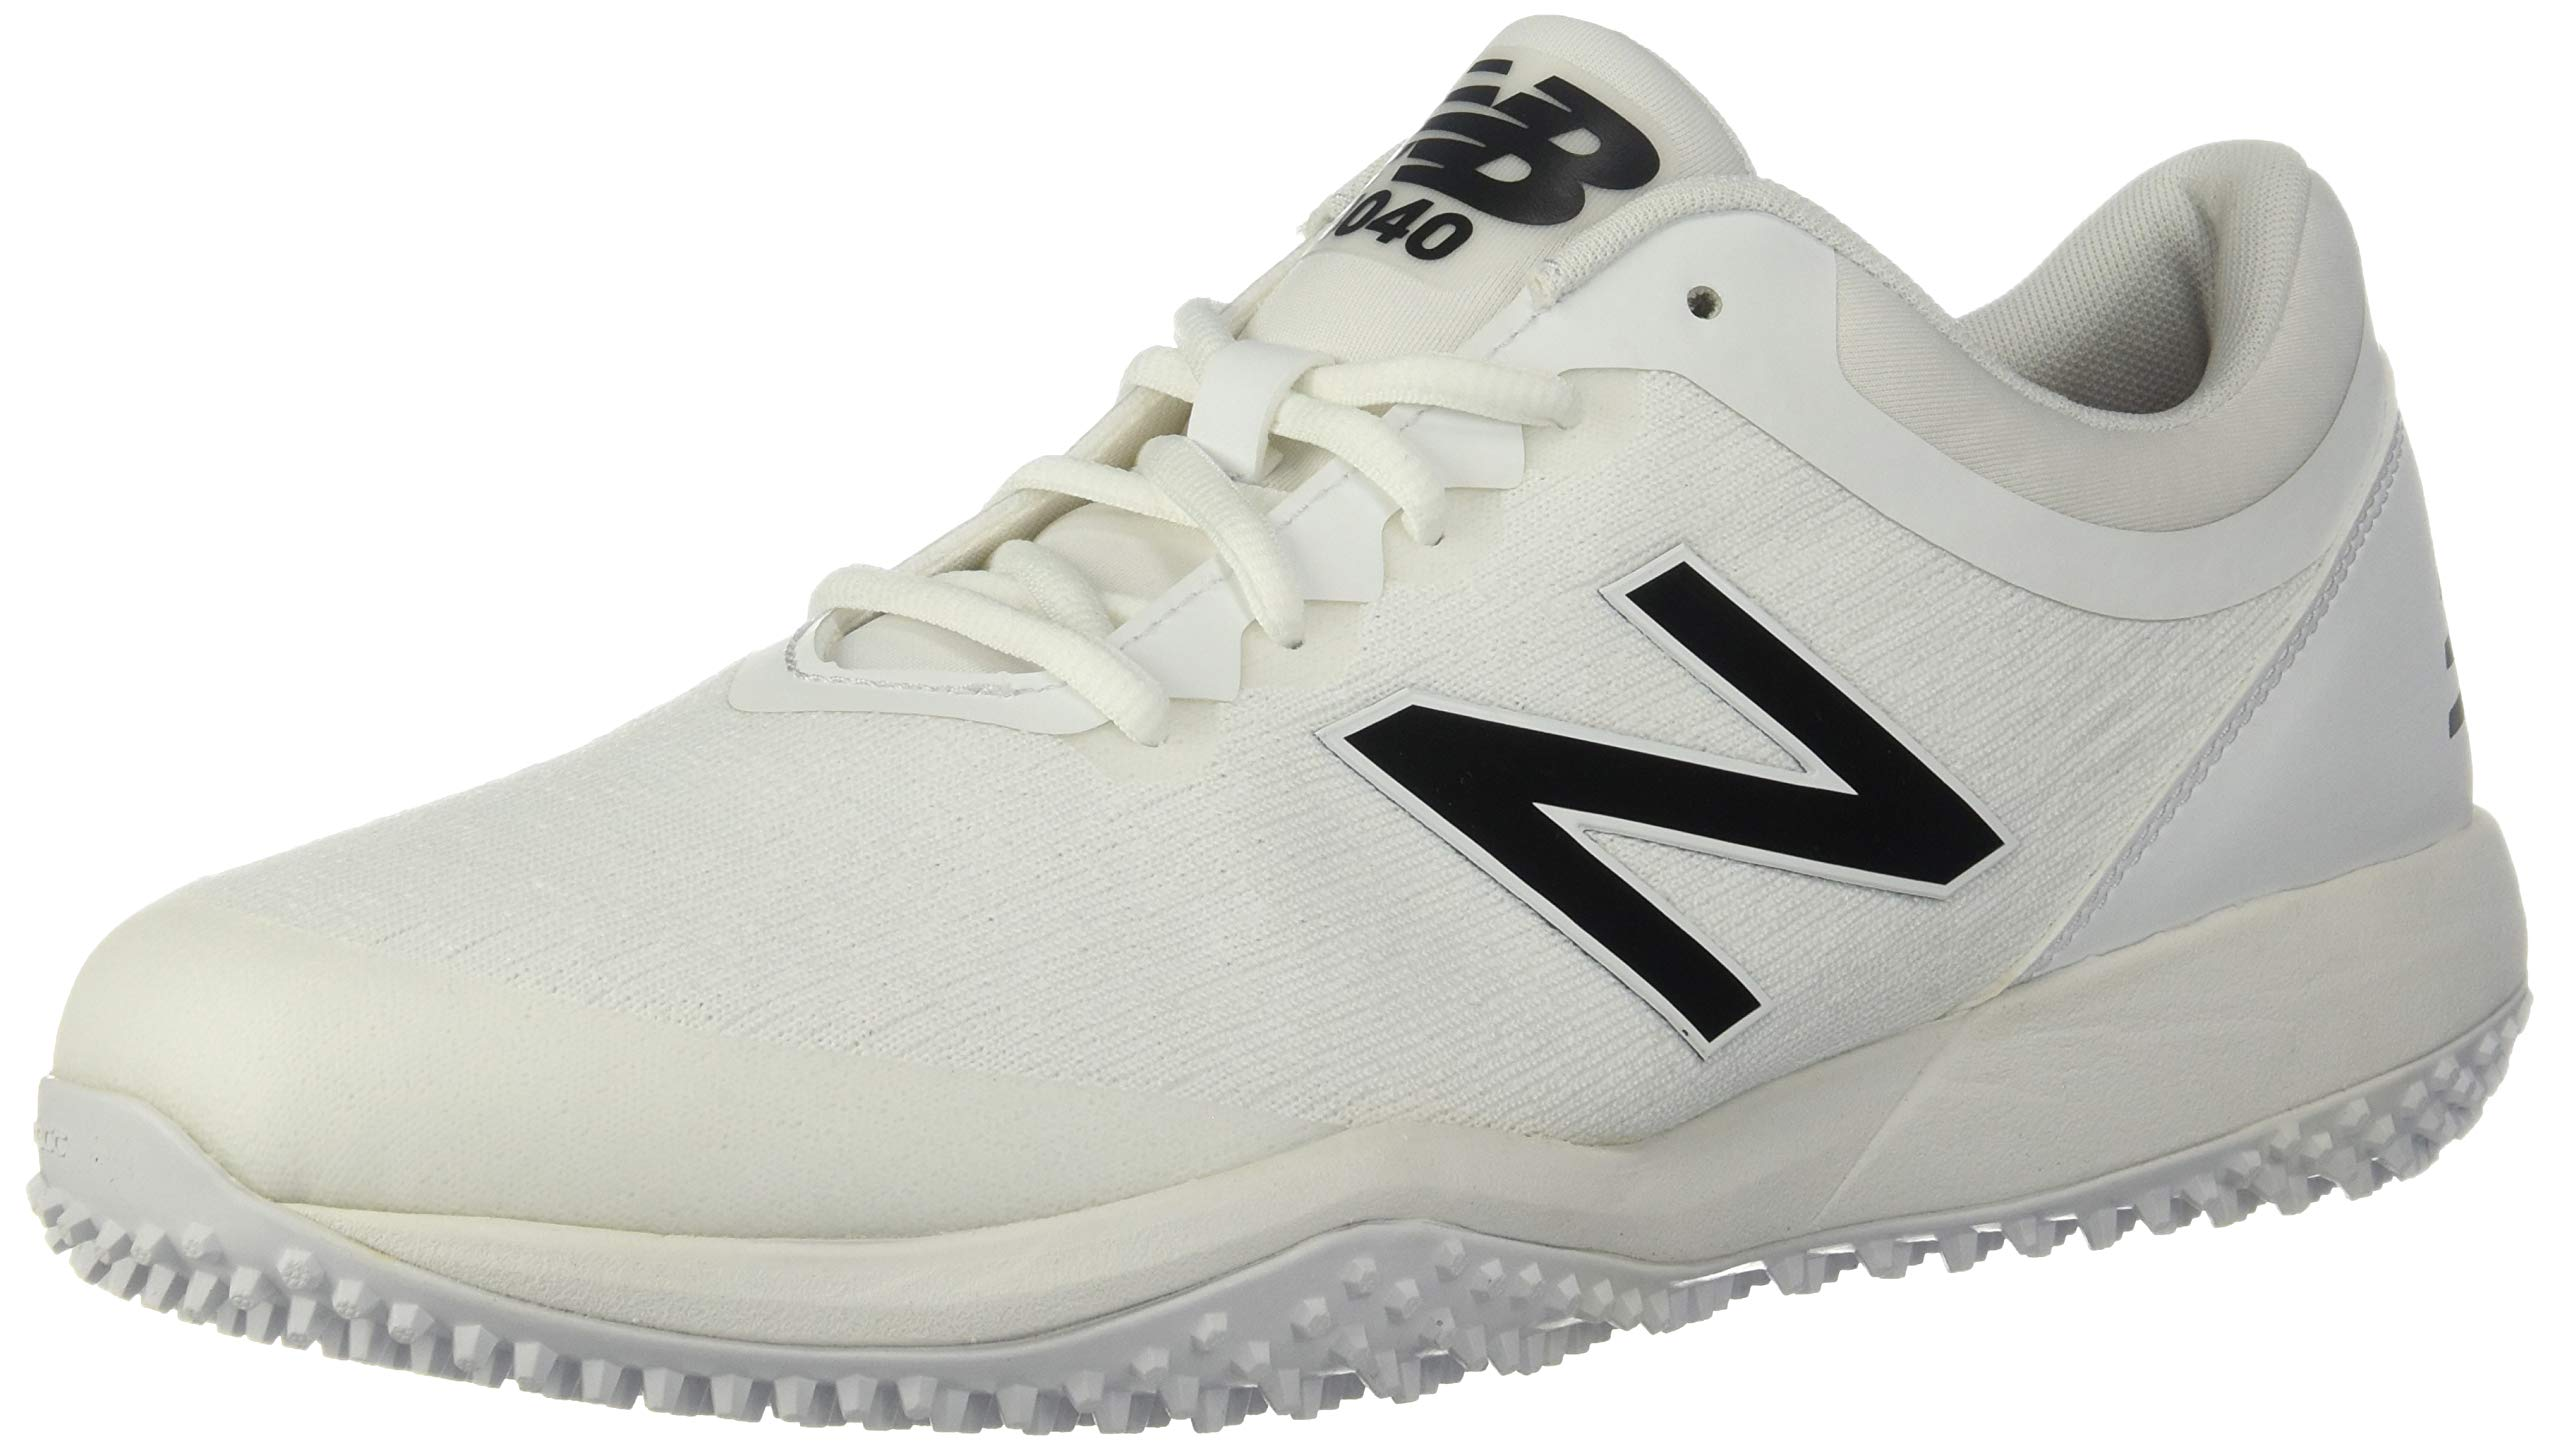 New Balance Men's 4040v5 Turf Running Shoe, All White, 6 D US by New Balance